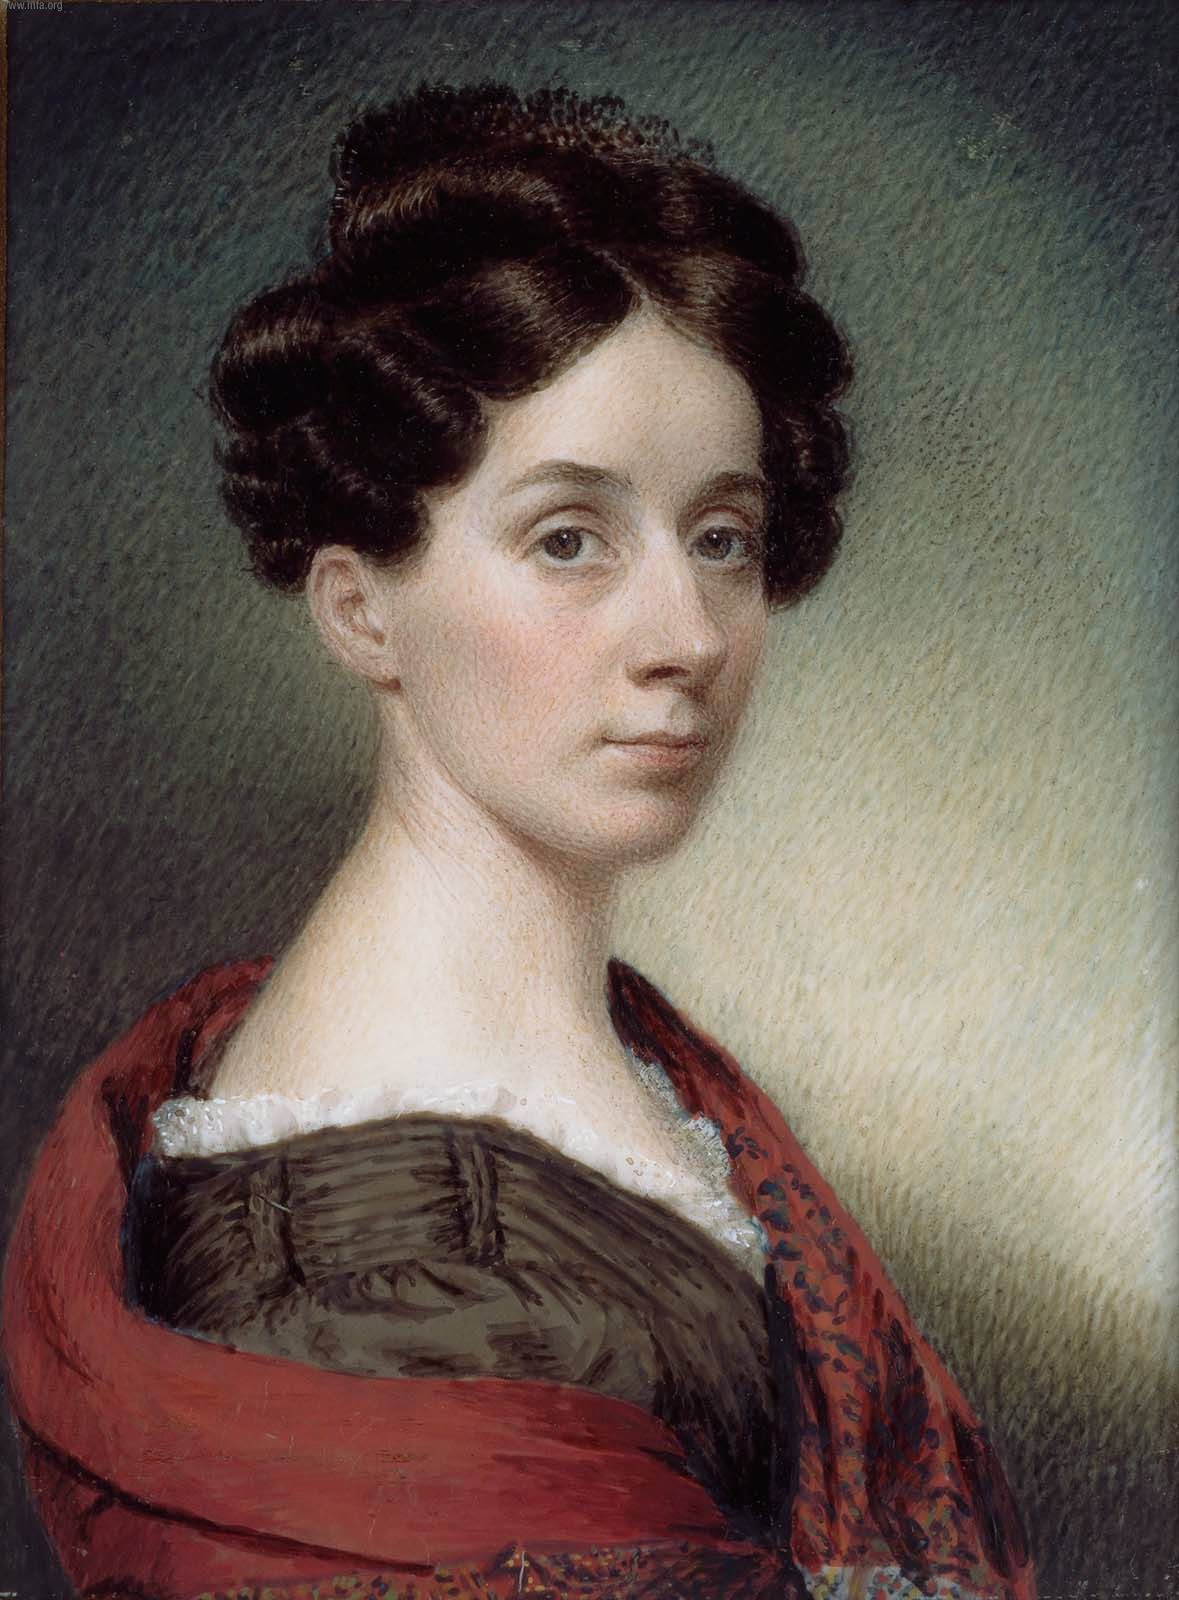 Sarah Goodridge, the artist, in 1830.